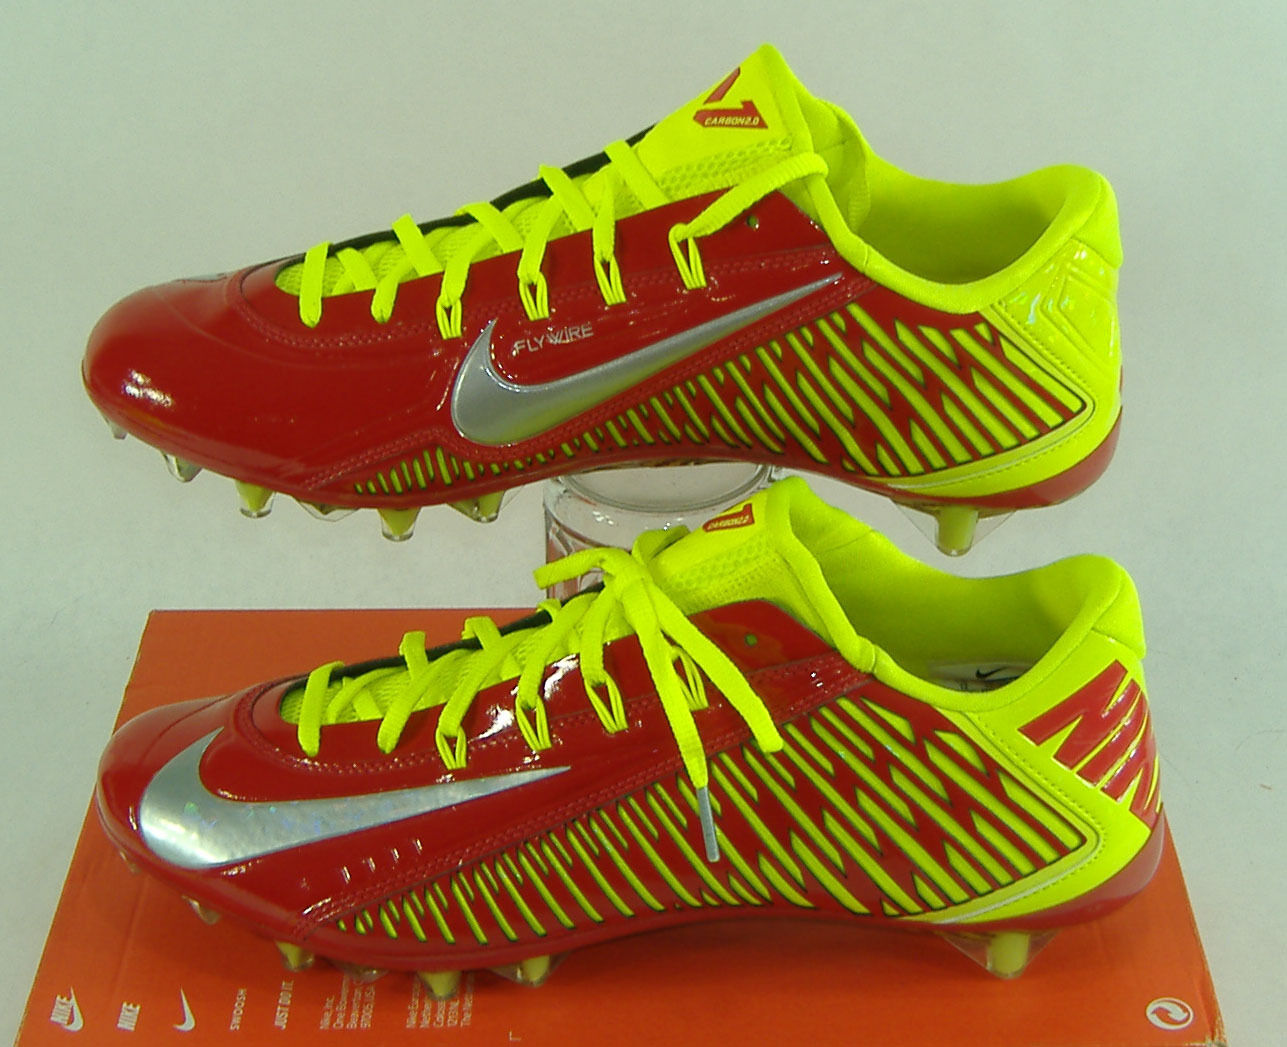 Cheap and beautiful fashion New Mens 10 NIKE Vapor Carbon ELT 2018 TD Red Volt Cleats Shoes Price reduction